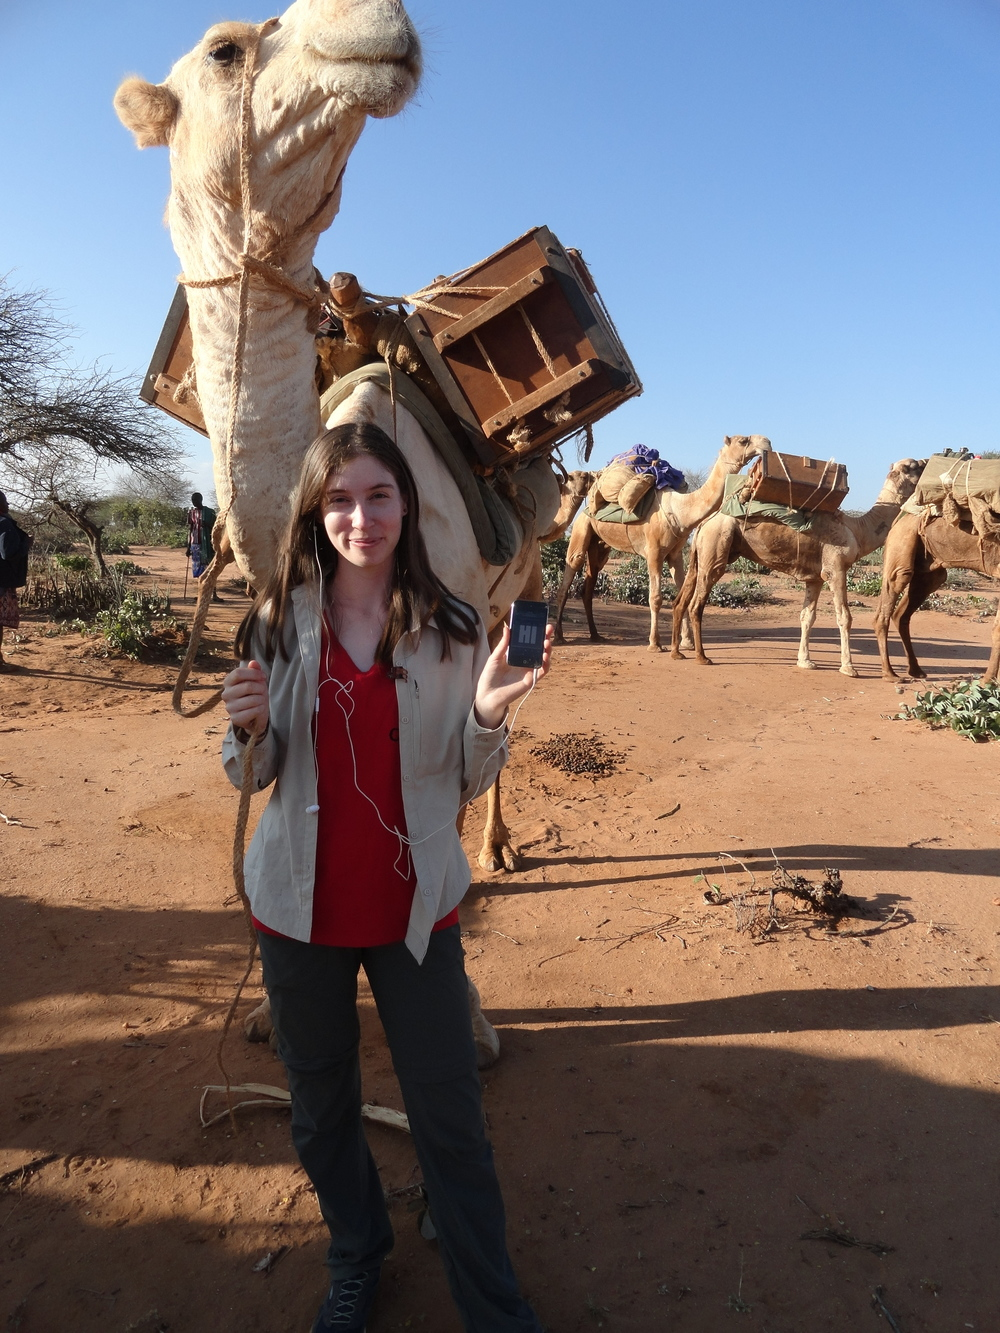 Dayna listened on a trek through the Kenyan desert